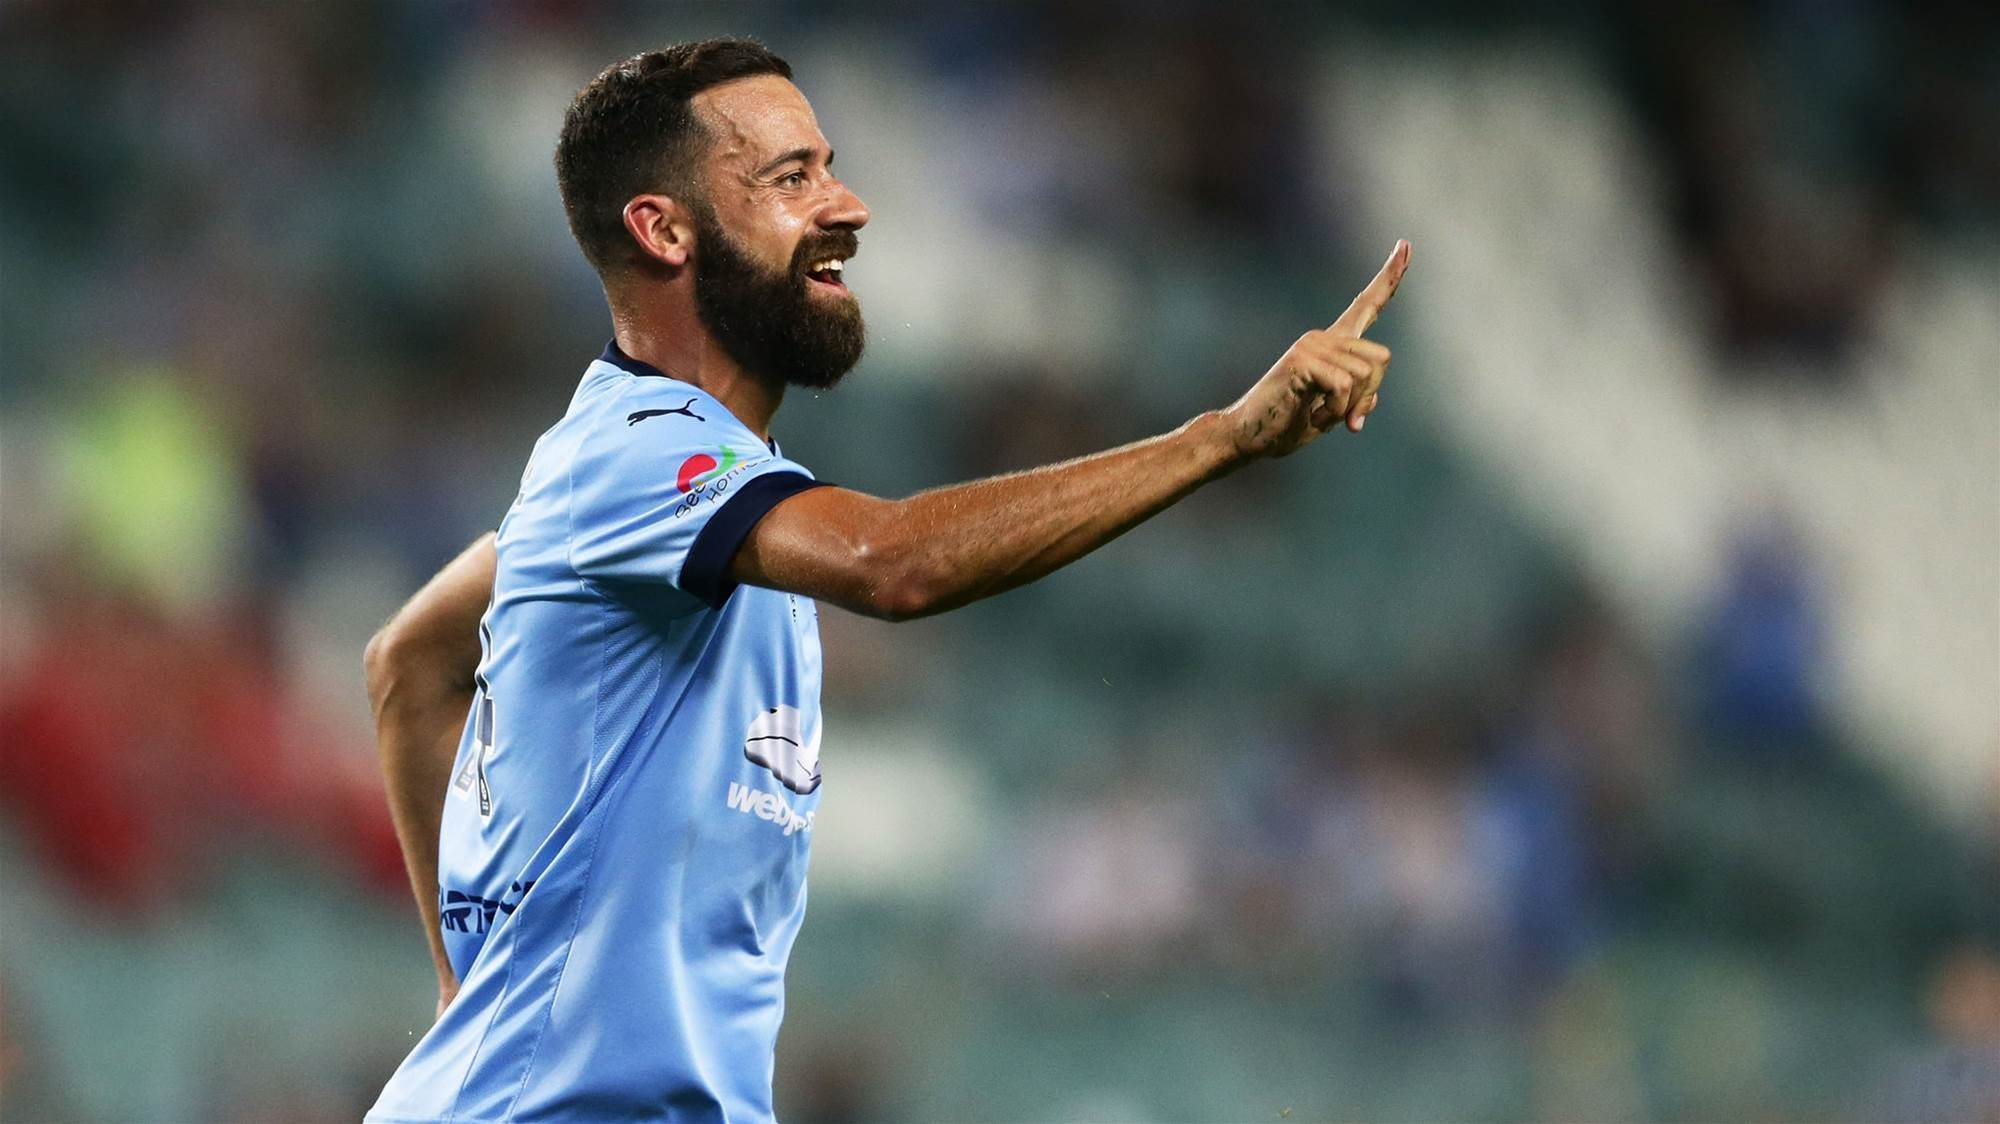 Brosque to Ange - I'm your man